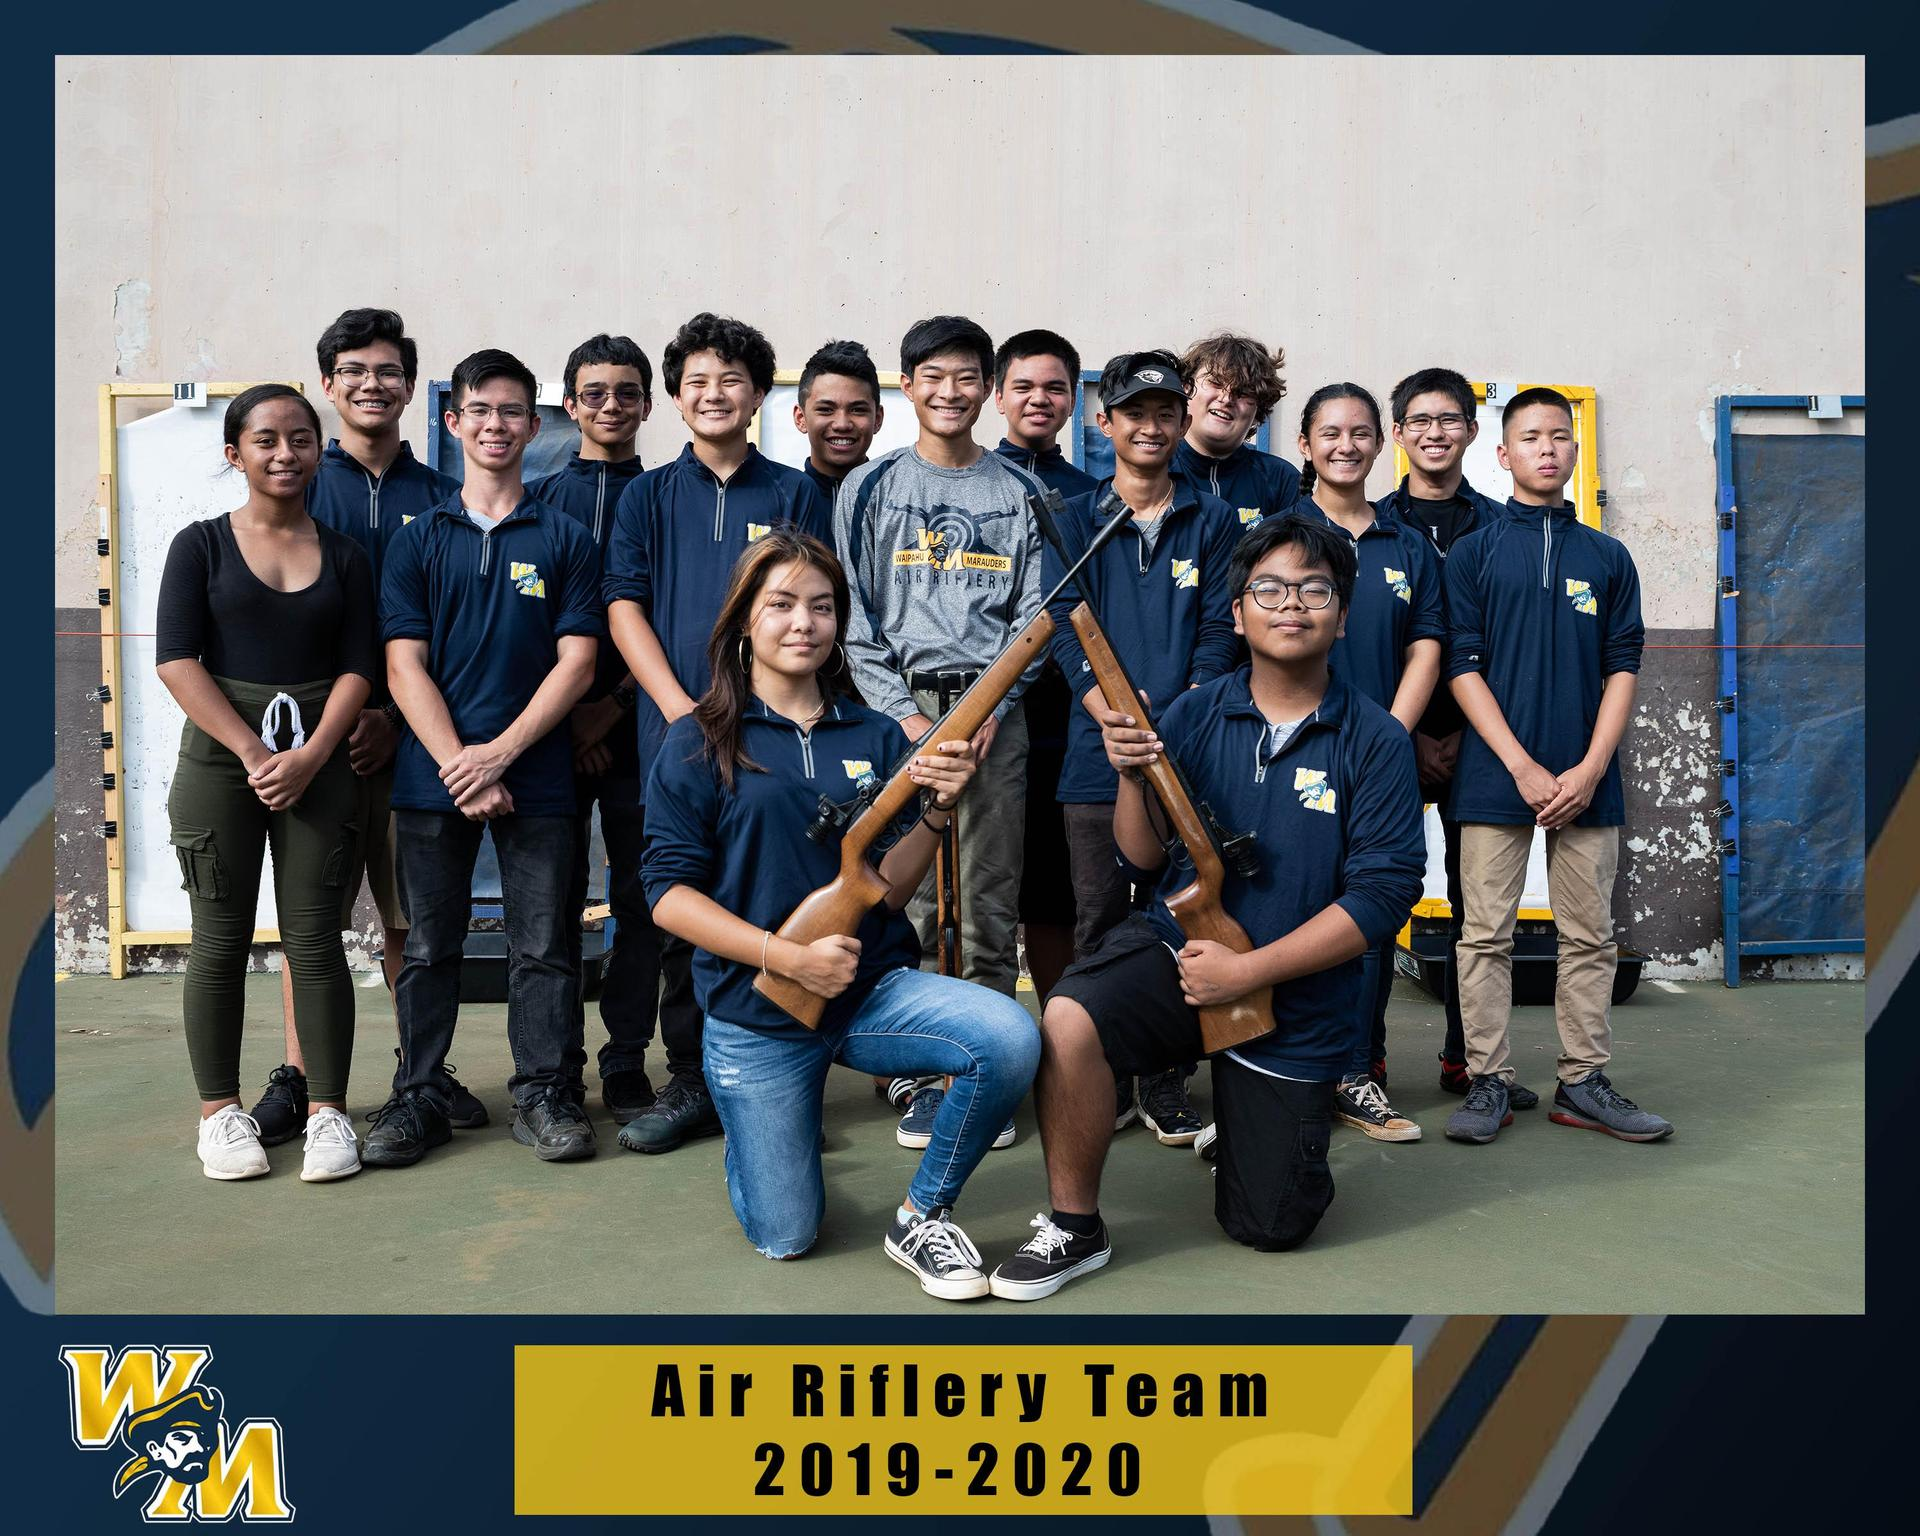 Air Riflery